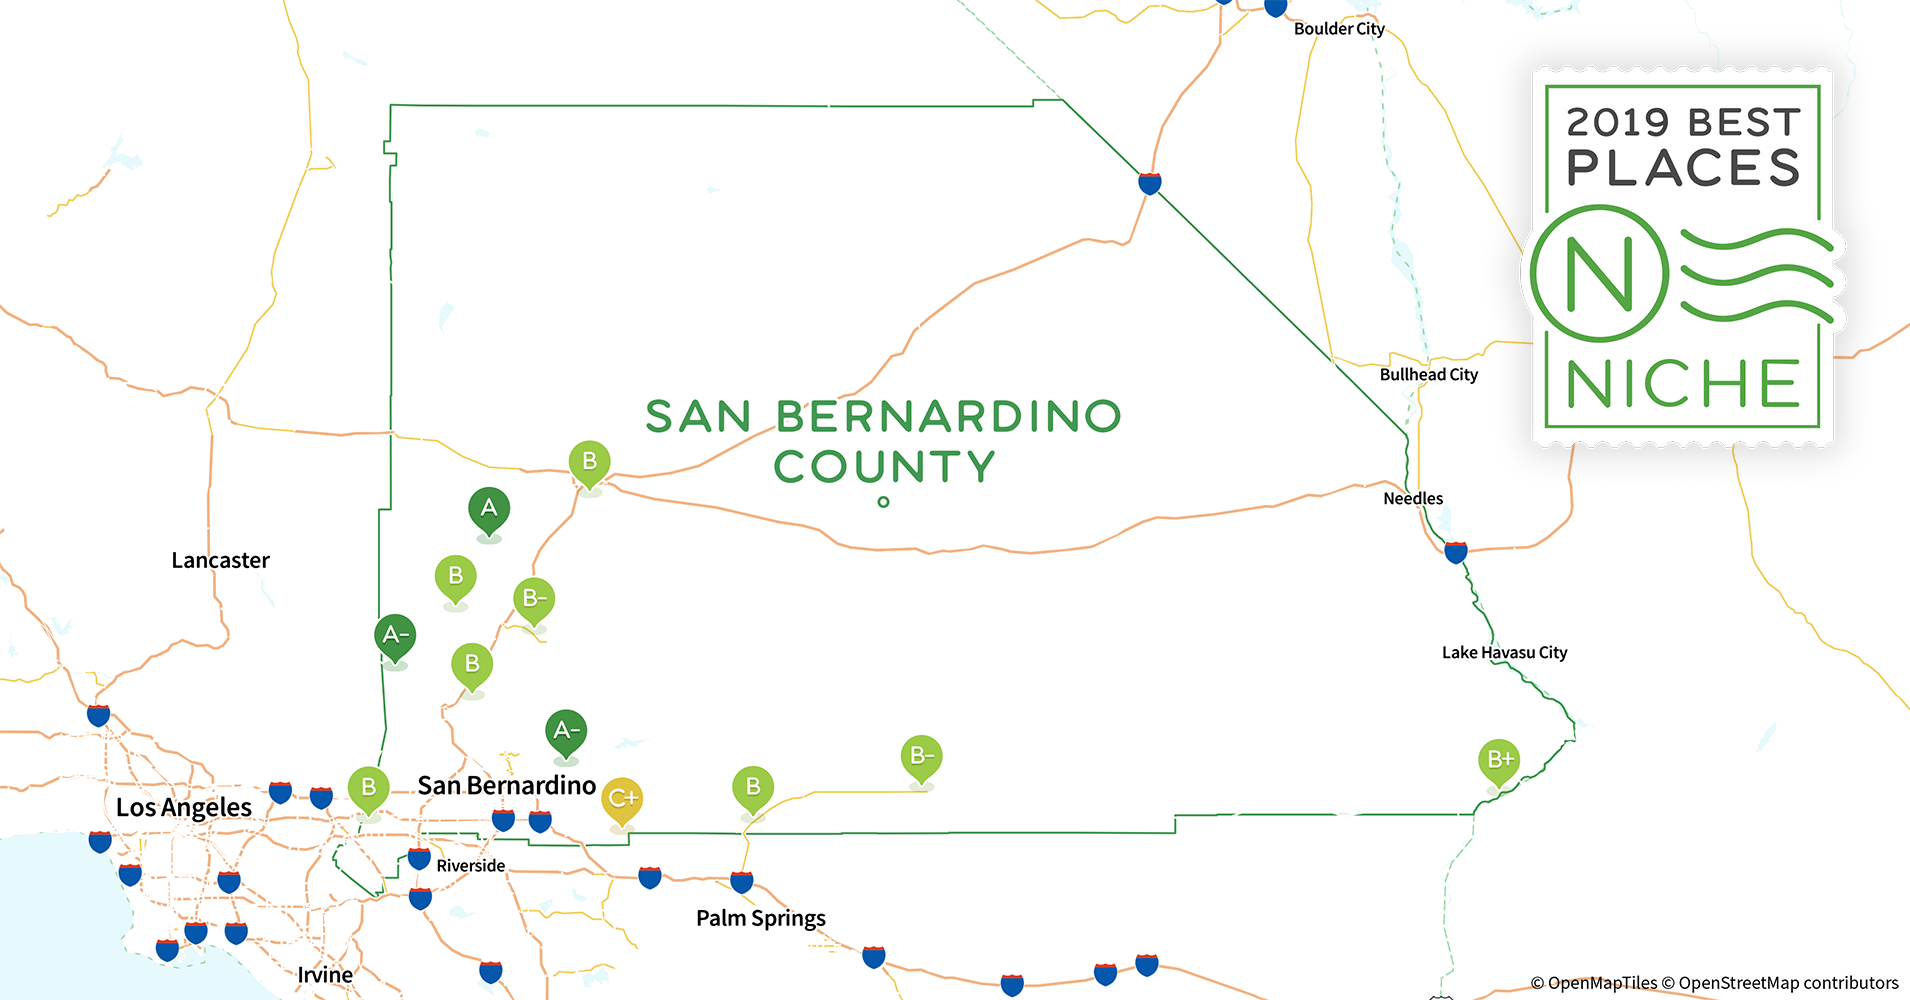 2019 Best Places to Live in San Bernardino County, CA - Niche Ca Map Of Cities on map of ca state, map of yuba city area, ca central valley cities, map of usa time, map of big bear lake calif, northern ca cities, map of ca mining towns, california cities, bay area county map with cities, map of la state line-ms, map of marina del rey ca, map of united states, minnesota map and cities, map of alderpoint ca, map of apple hill camino ca, ca county map with cities, map of the counties in ca, map of la parishes with towns, map of national forests in ca, map of ca water,